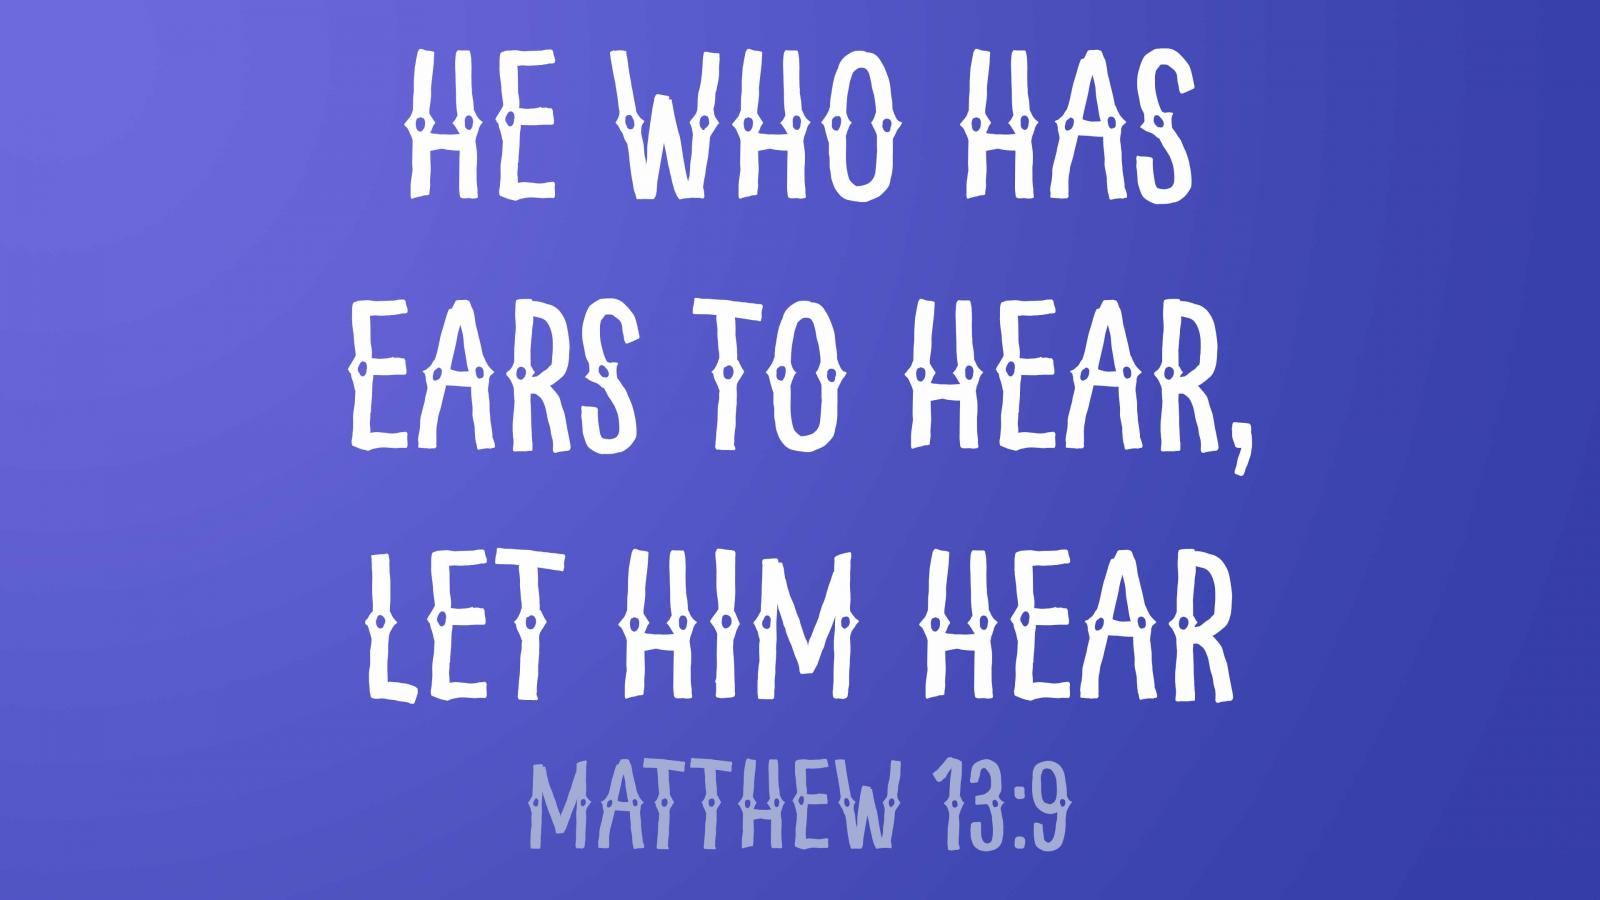 he who has ears to hear, let him hear (Matthew 13:9)